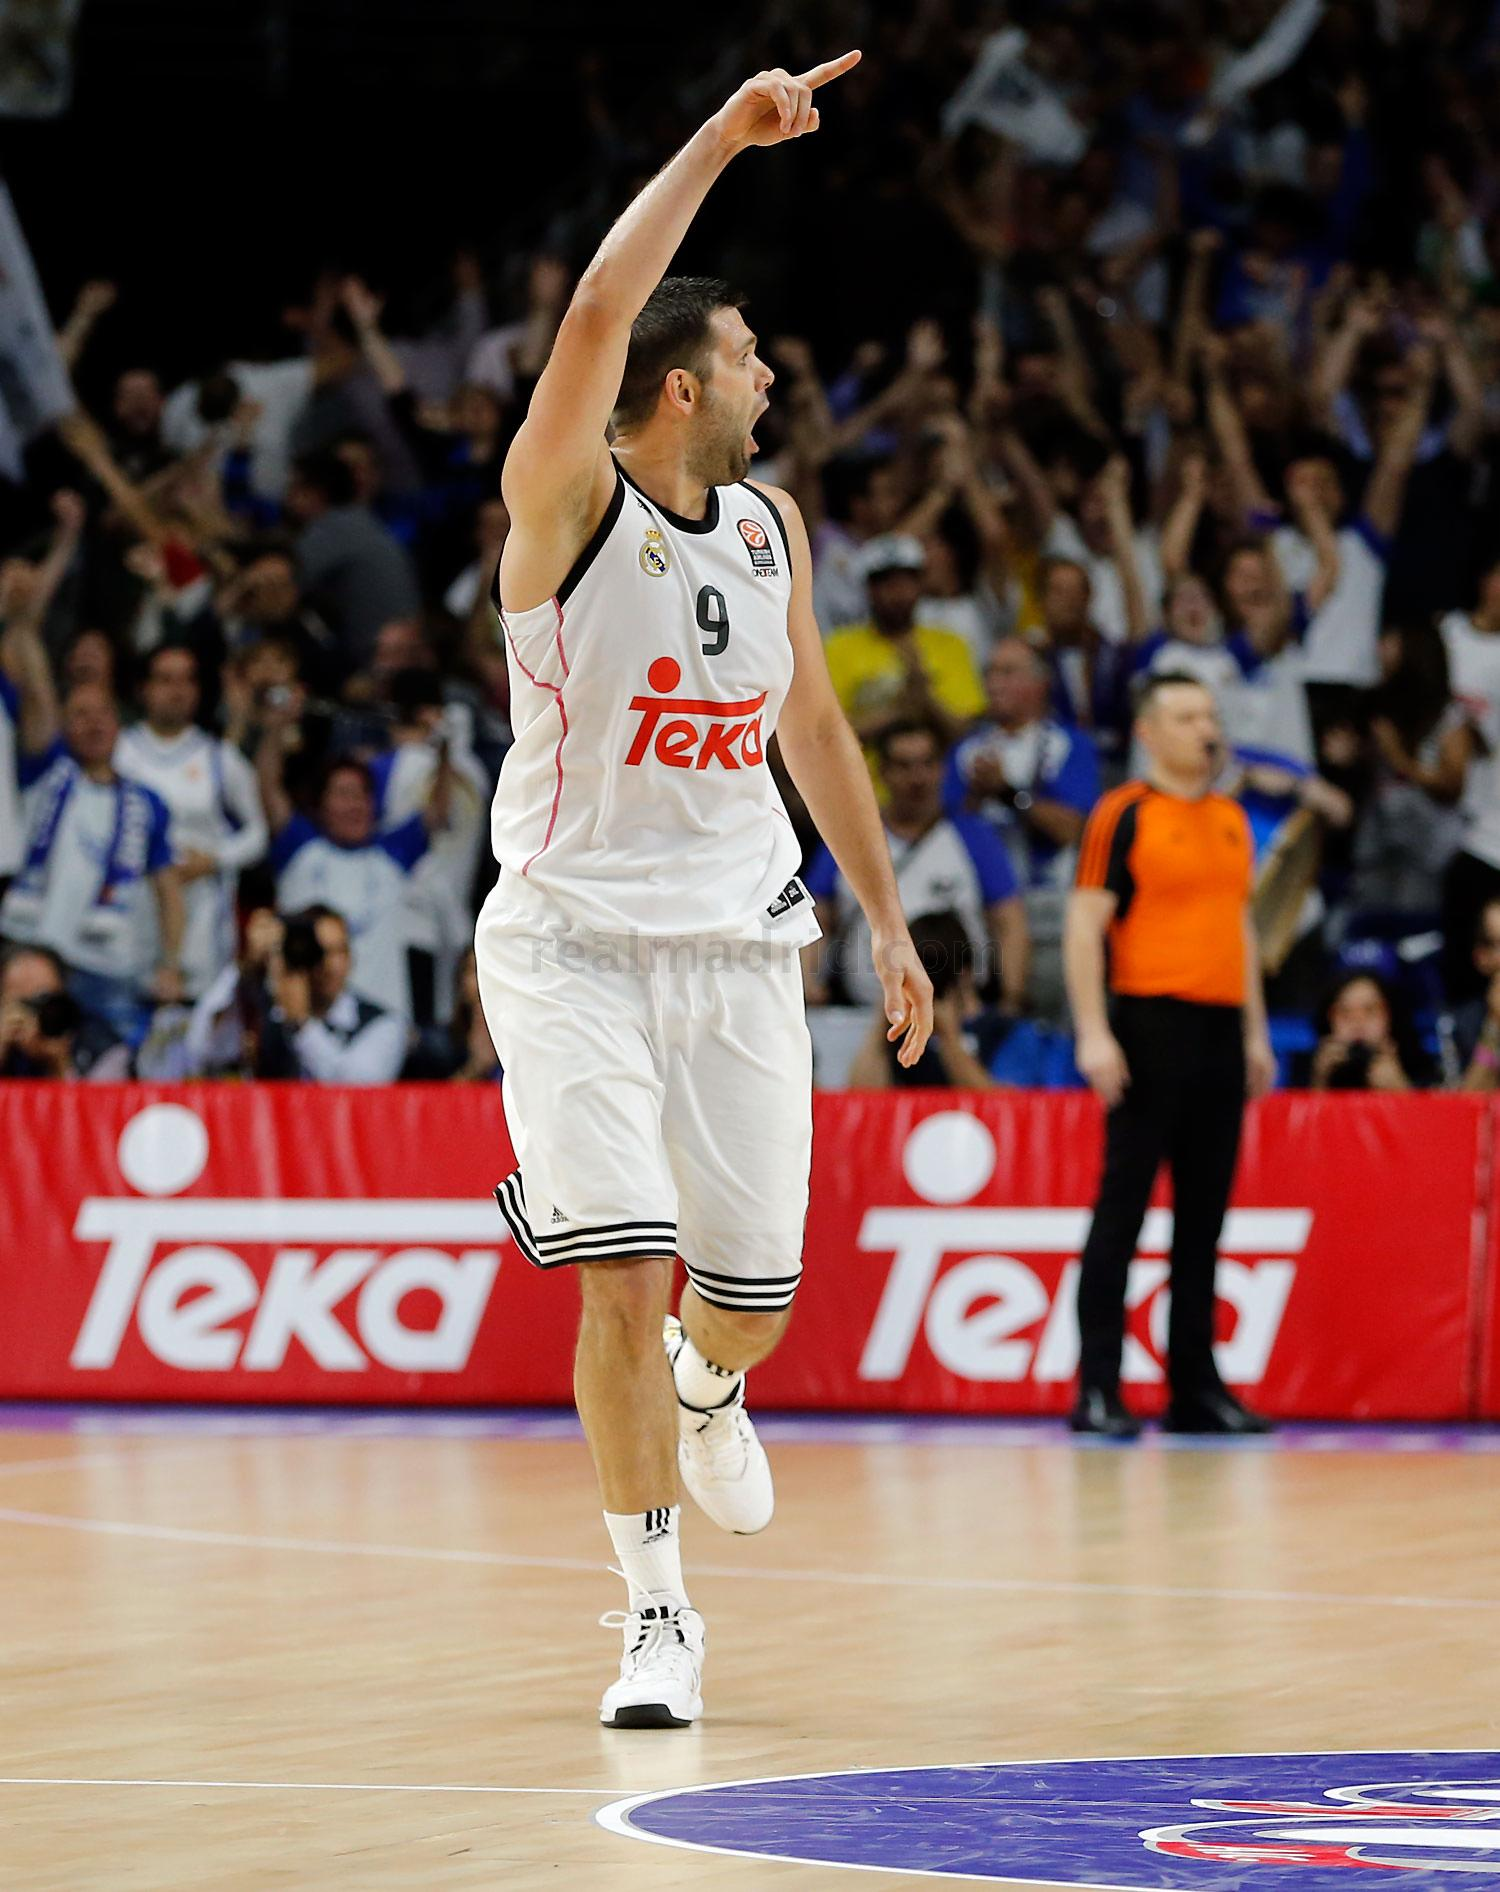 Real Madrid - Real Madrid - Anadolu Efes - 17-04-2015